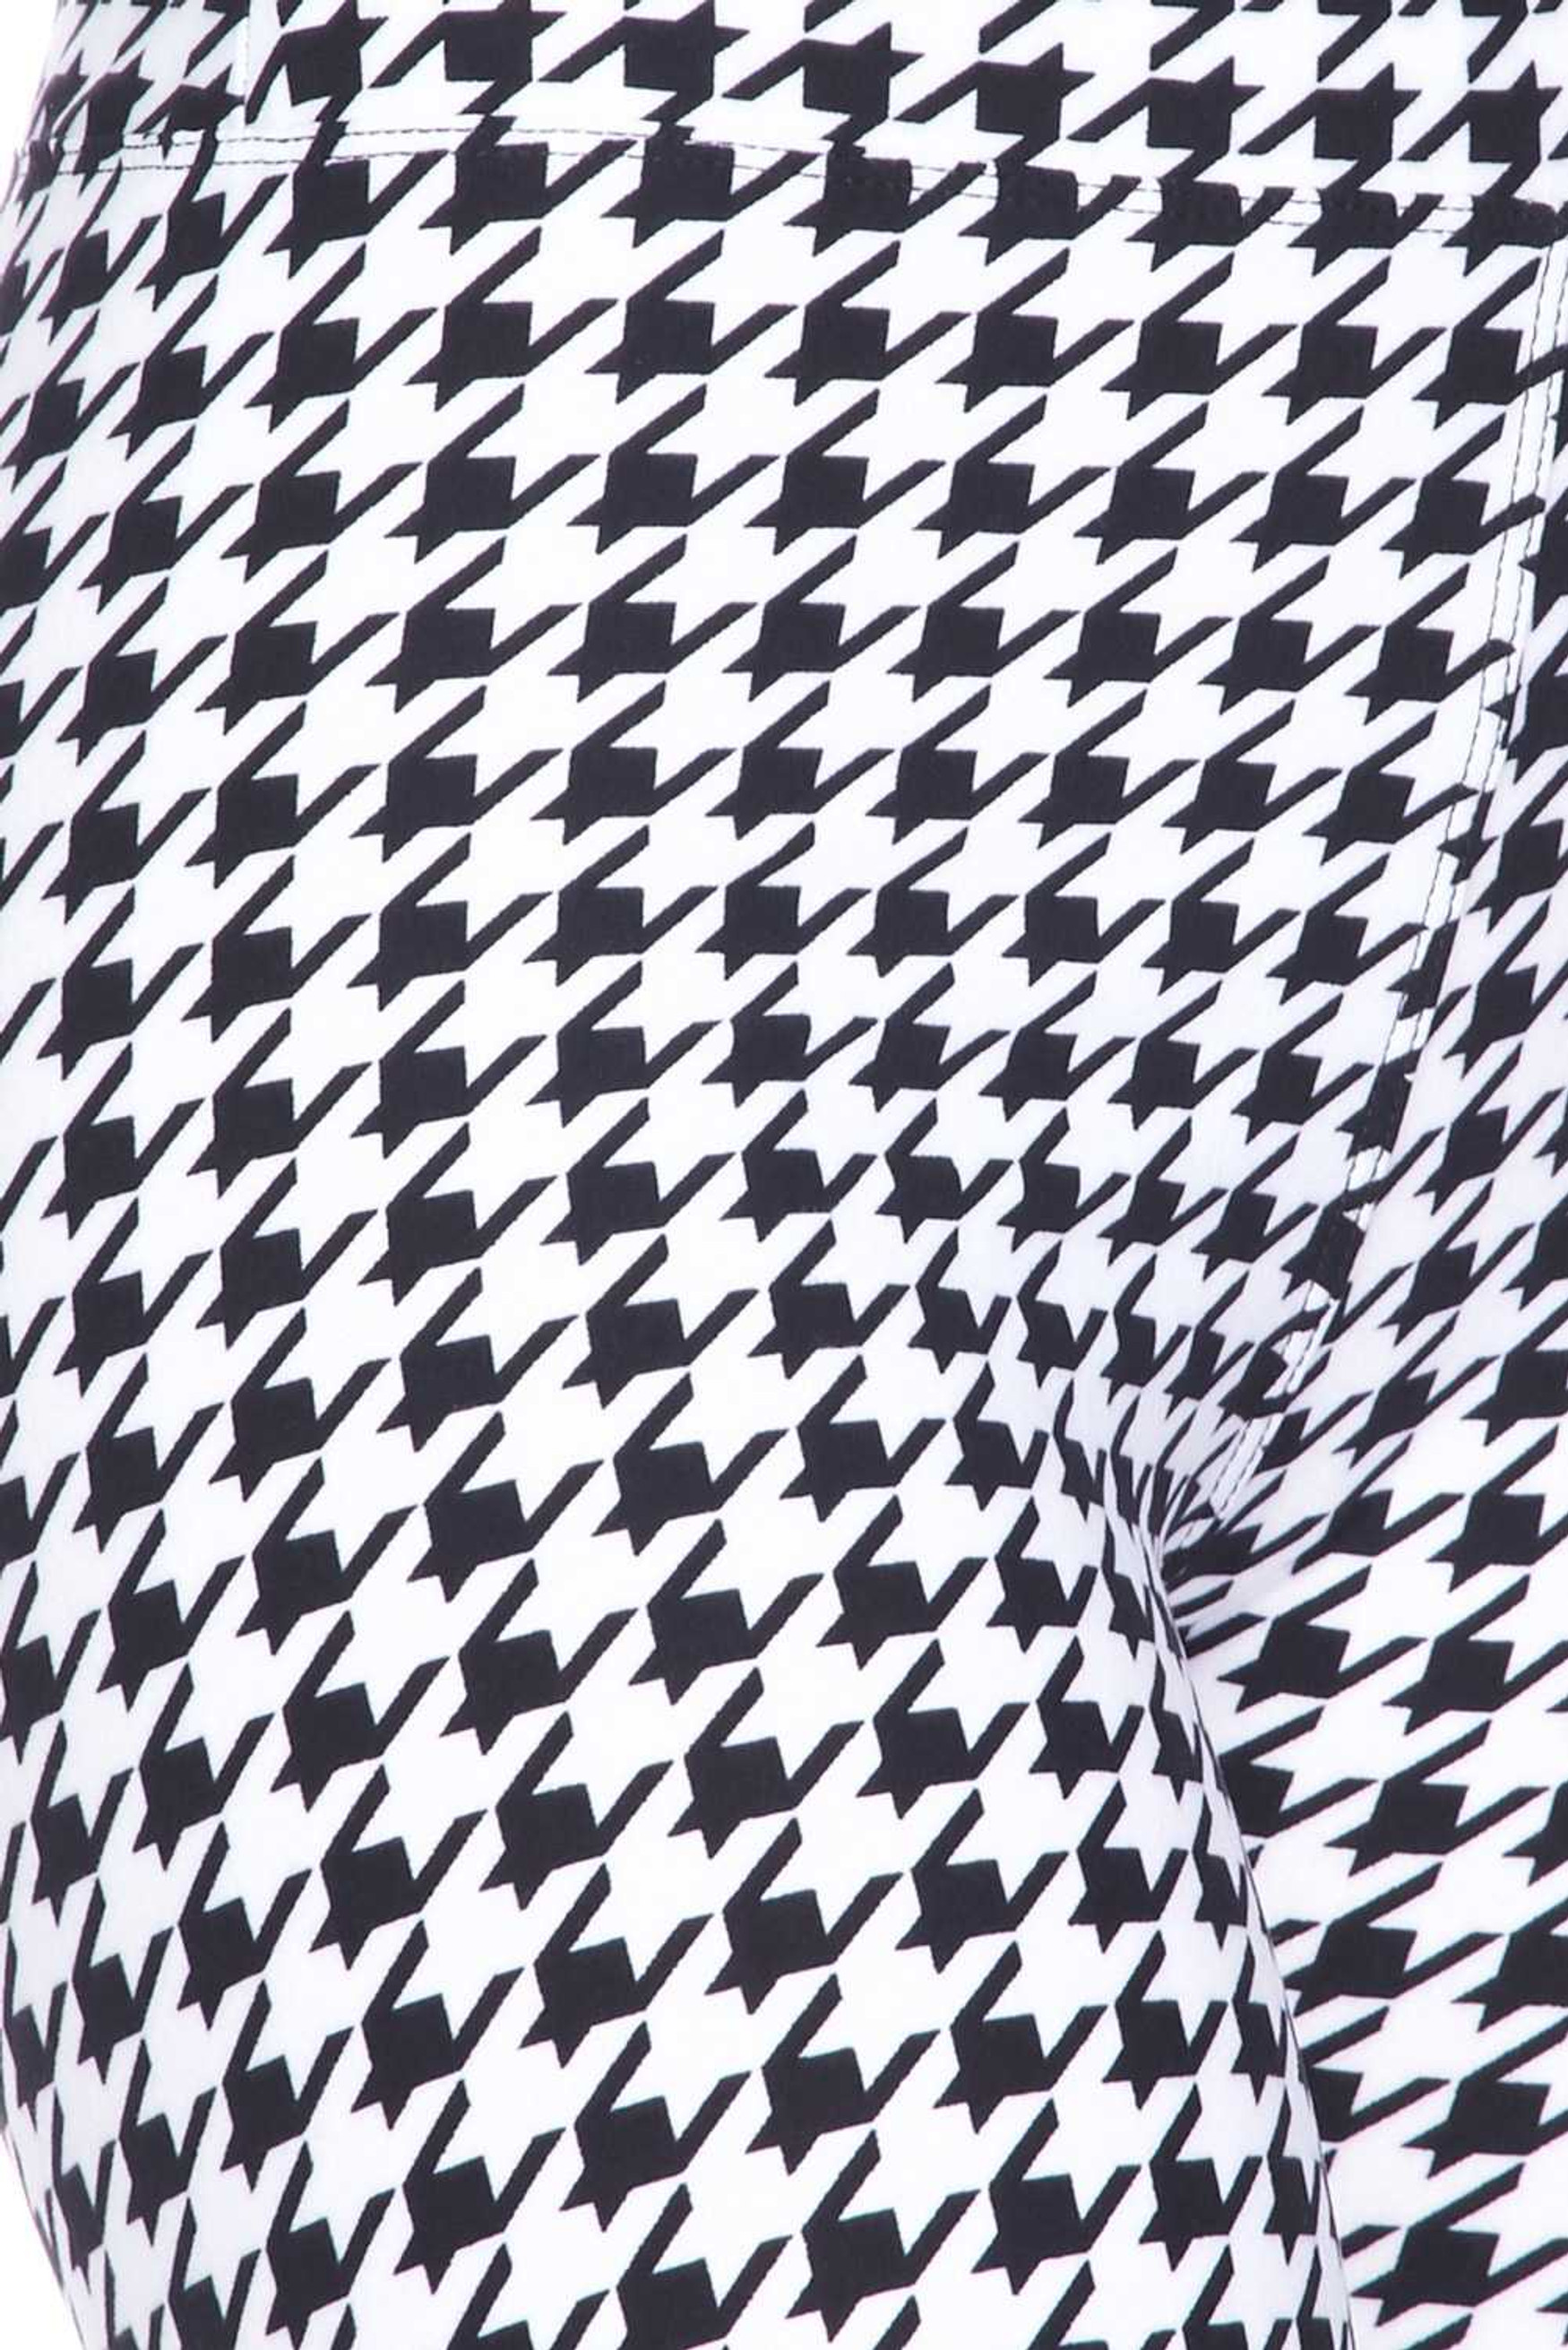 Buttery Soft Houndstooth Plus Size Capris - 3 Inch Waist Band